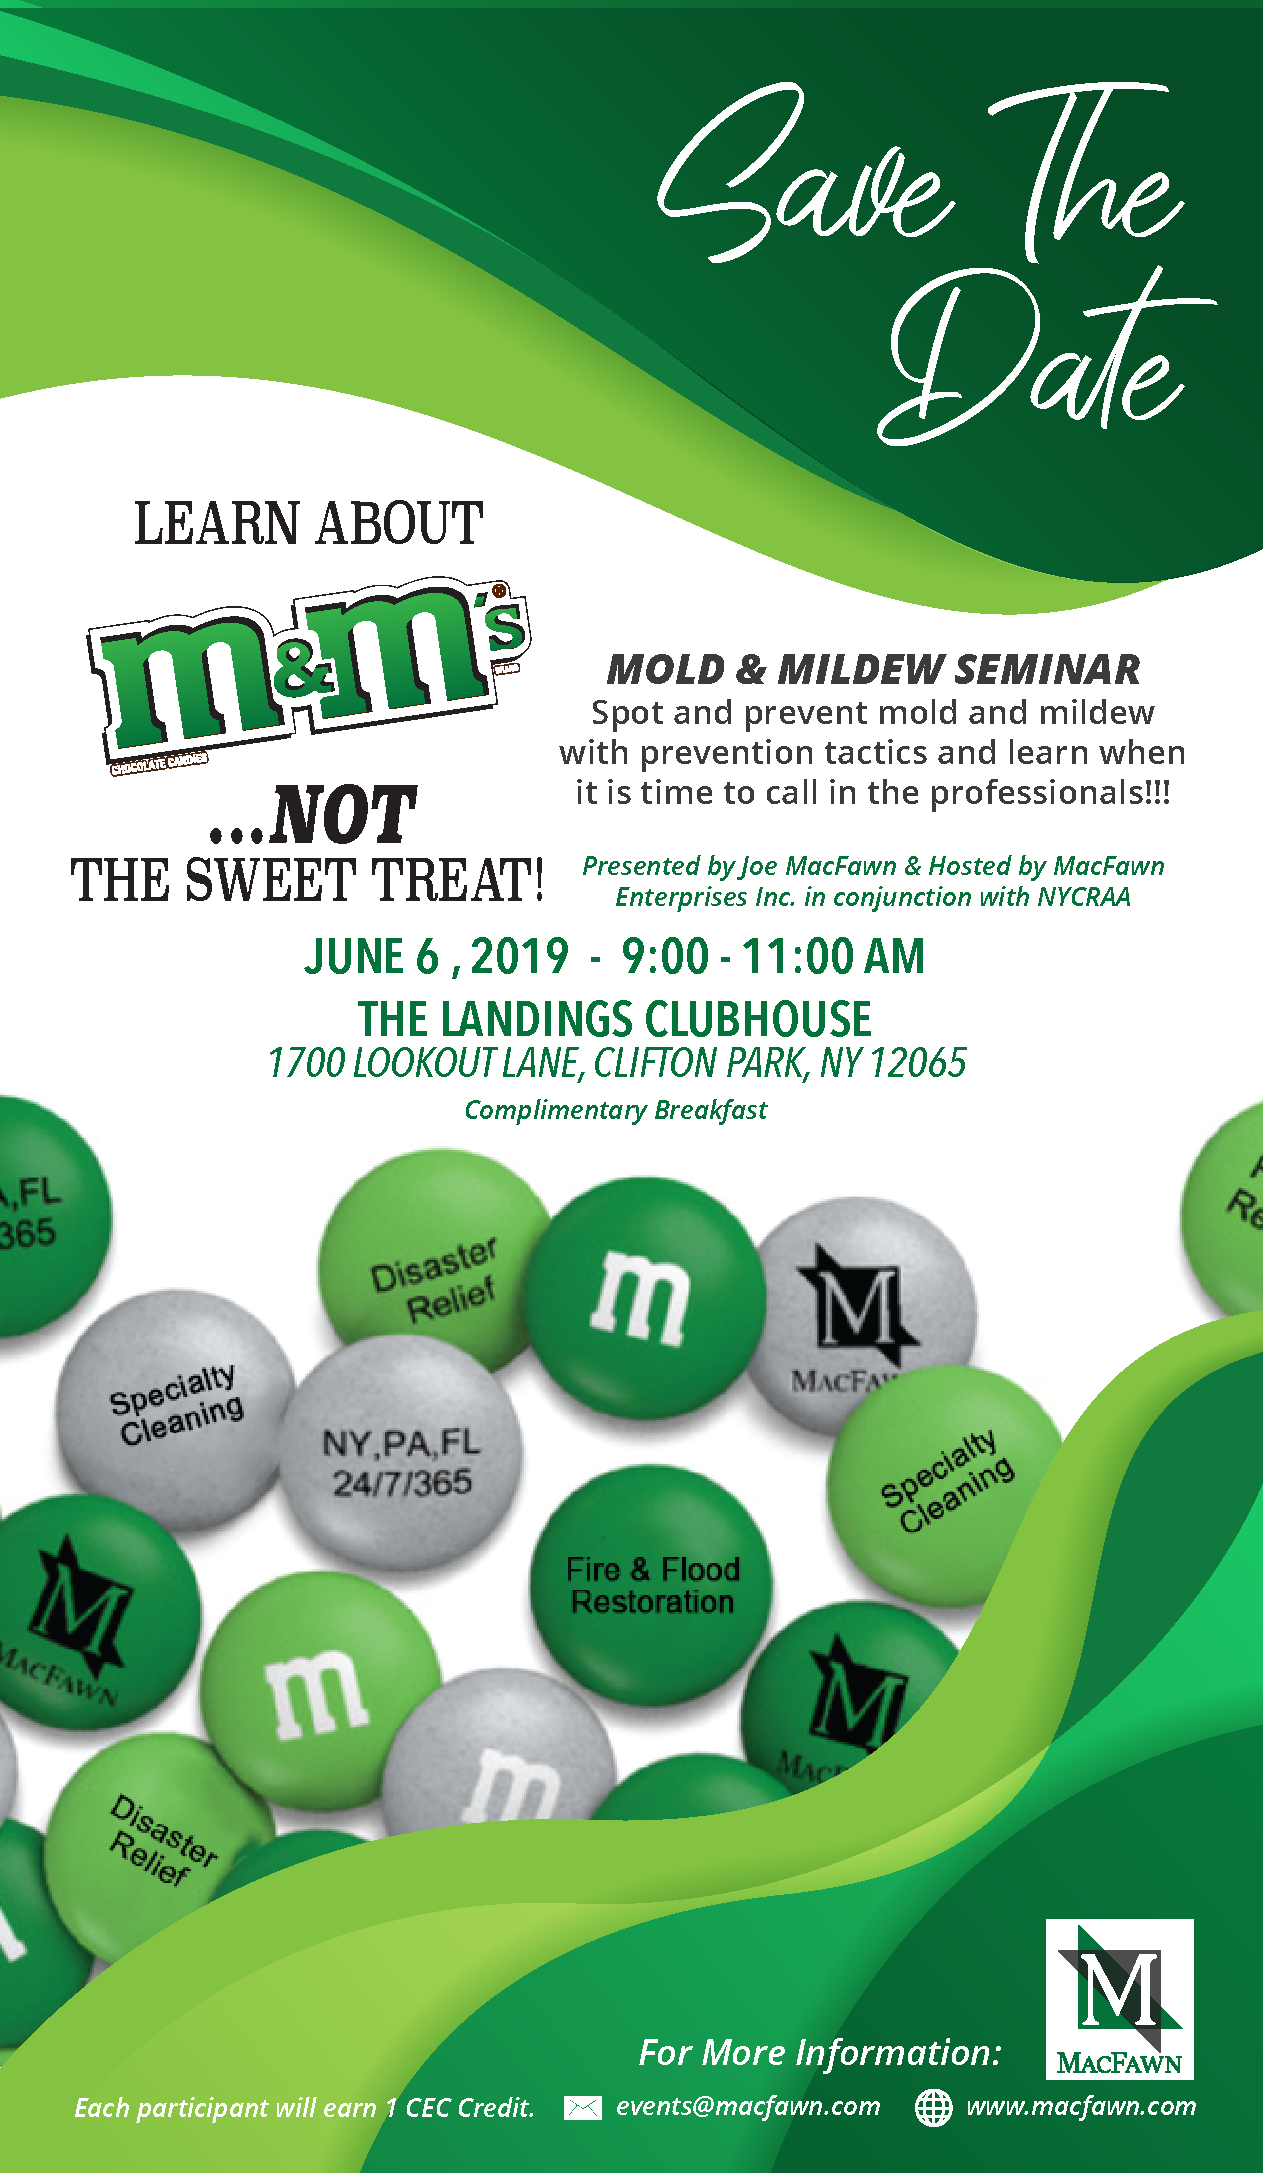 M&M's Event save the date